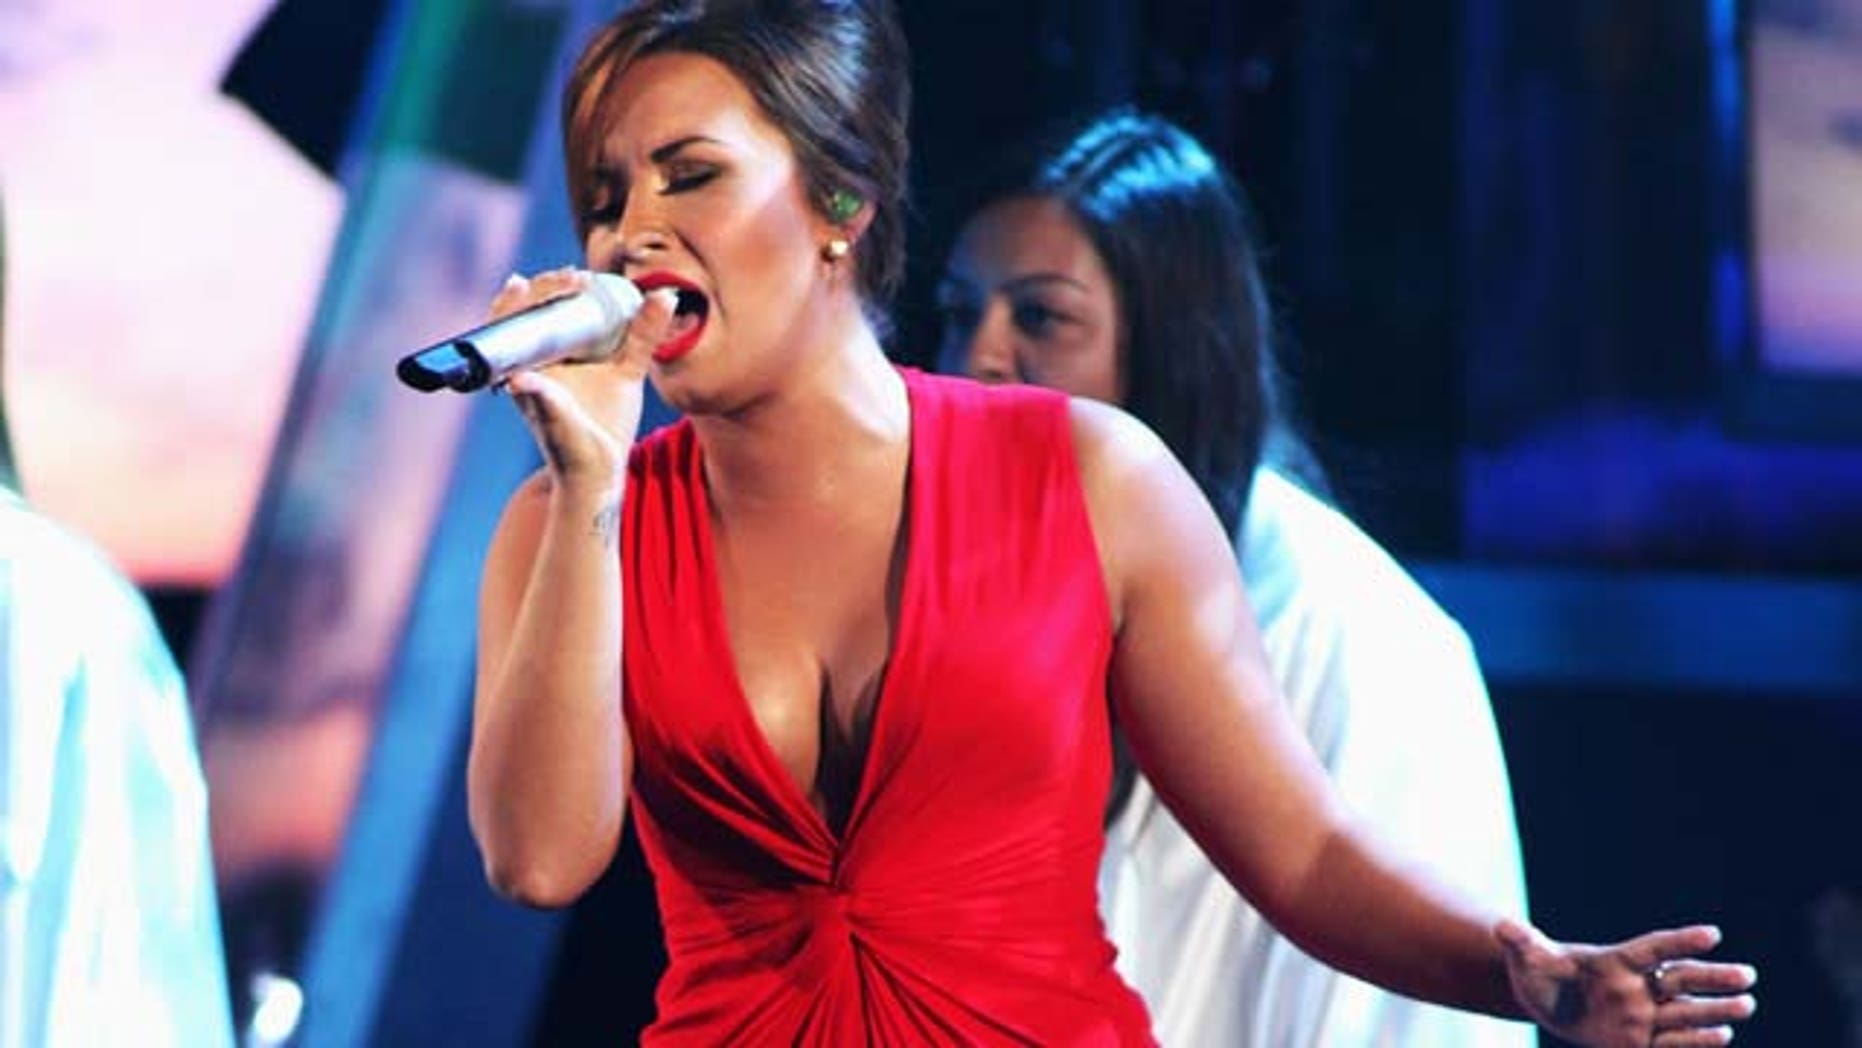 Sept. 10, 2011: Demi Lovato performs onstage during the 2011 NCLR ALMA Awards held at Santa Monica Civic Auditorium in Santa Monica, Calif.